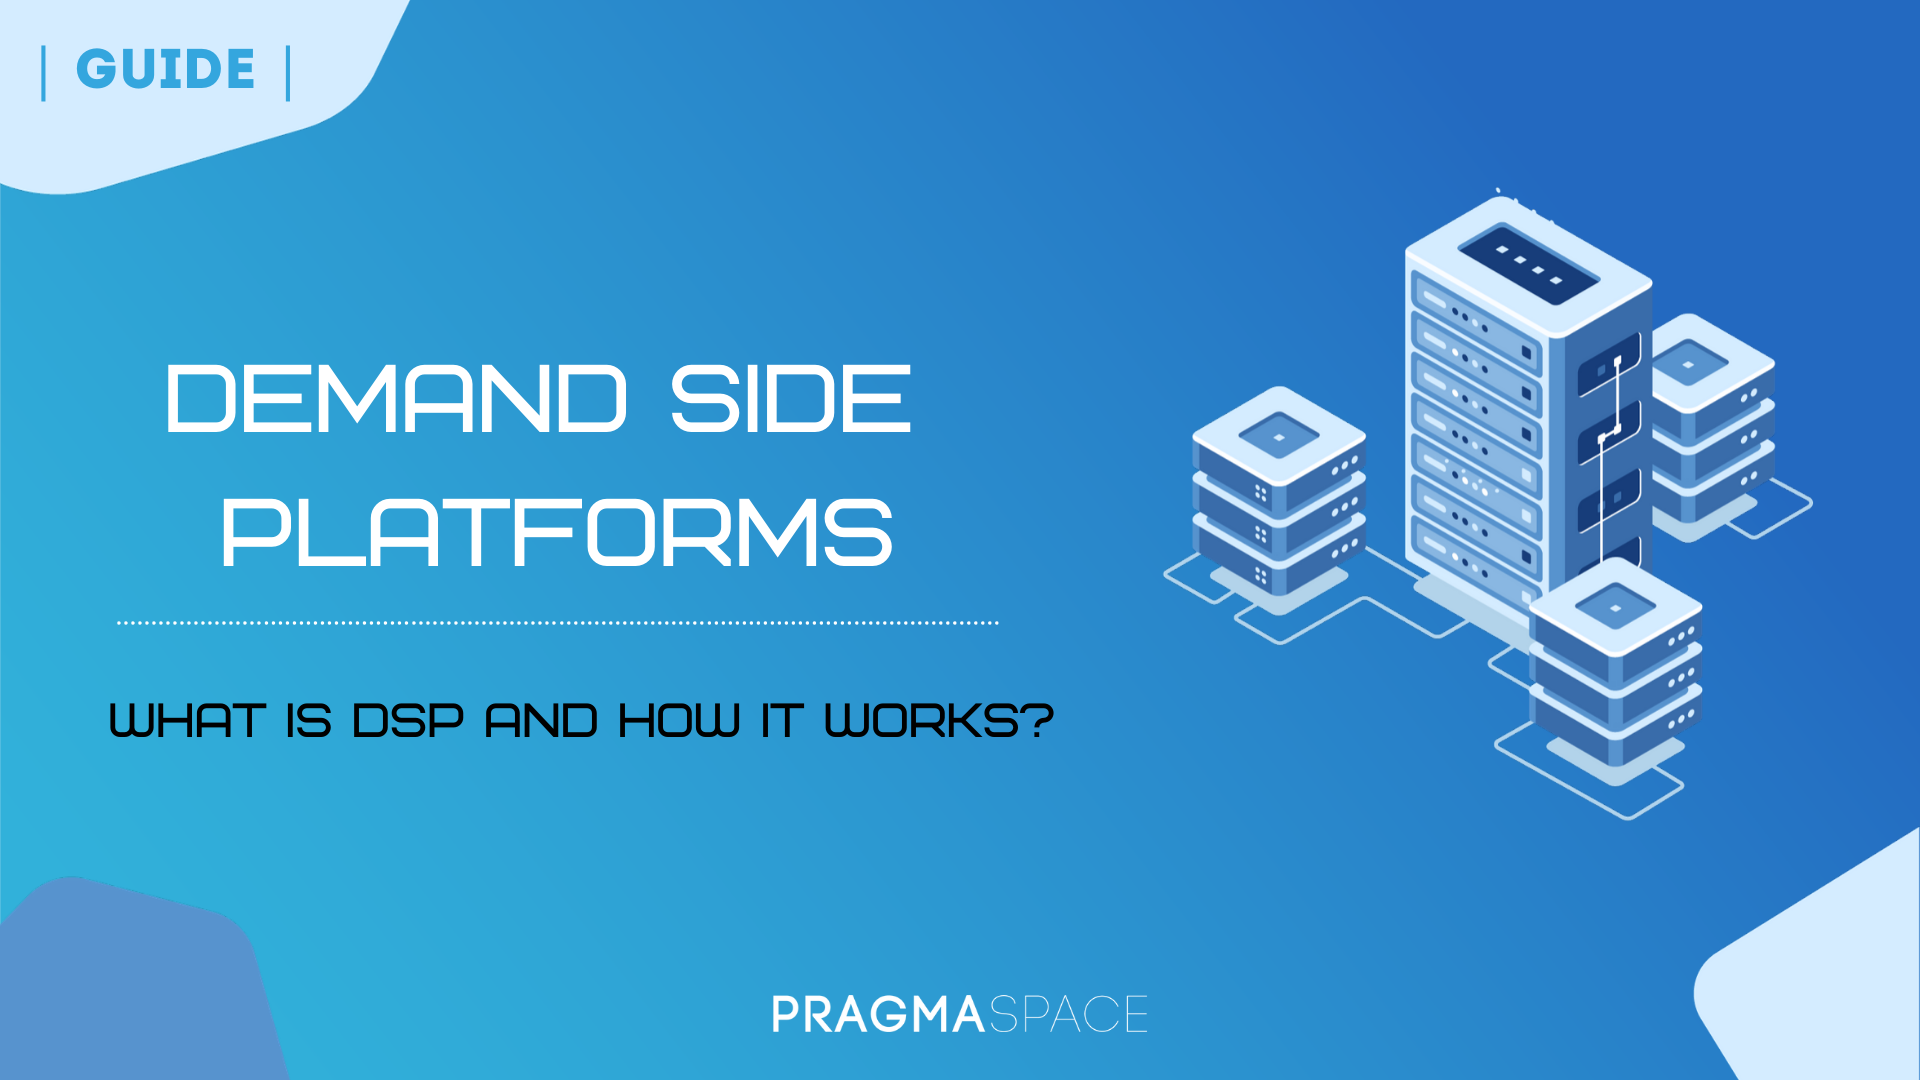 Full DSP Guide: what is Demand Side Platform (DSP)?